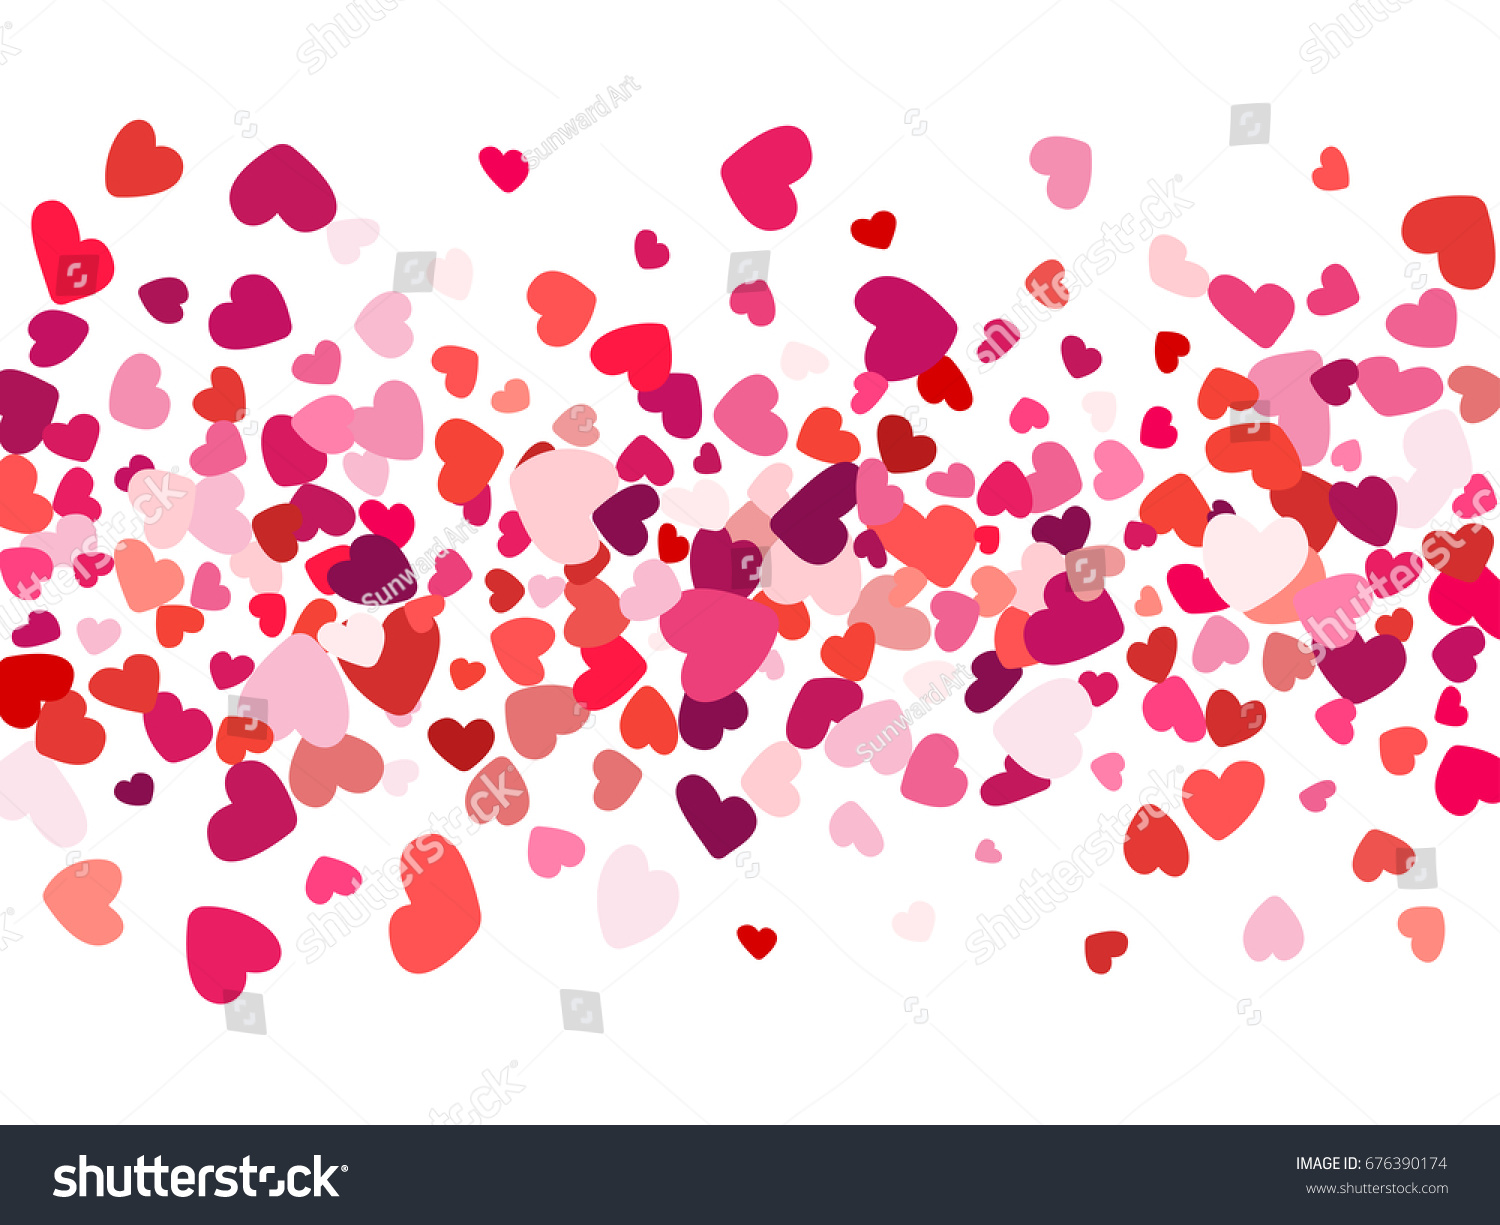 heart doodles love and friendship background illustration valentines day banner love symbols vector pattern